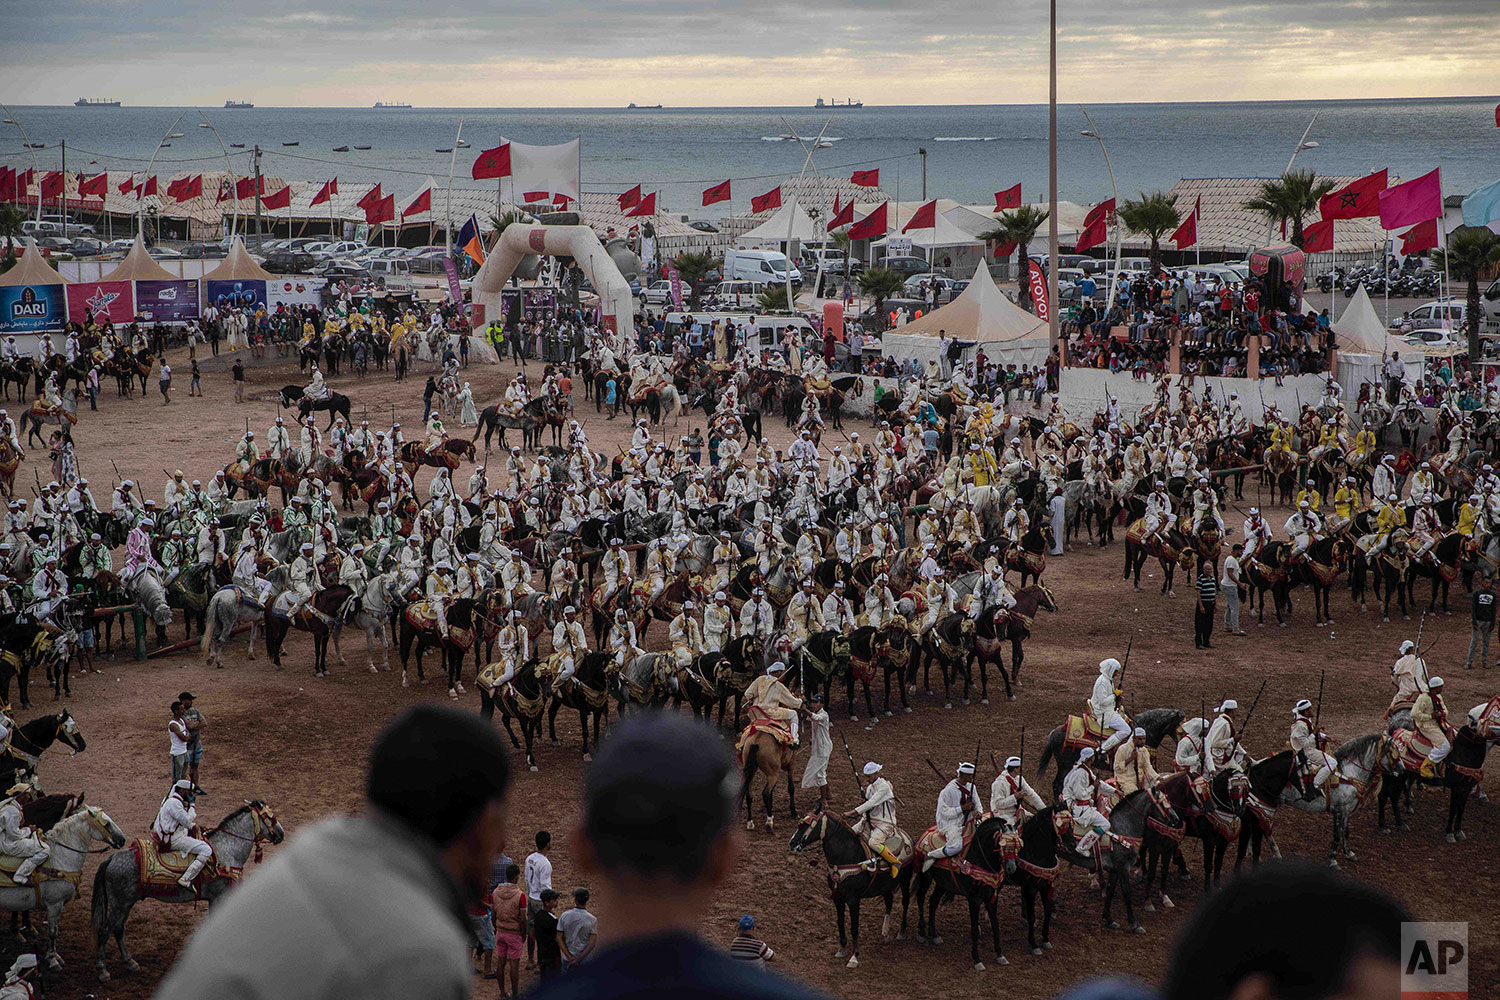 In this Thursday, July 25, 2019 photo, people watch as horse riders wait for their turn to take part in an equestrian show known as Fantasia or Tabourida, in the coastal town of El Jadida, Morocco. (AP Photo/Mosa'ab Elshamy)